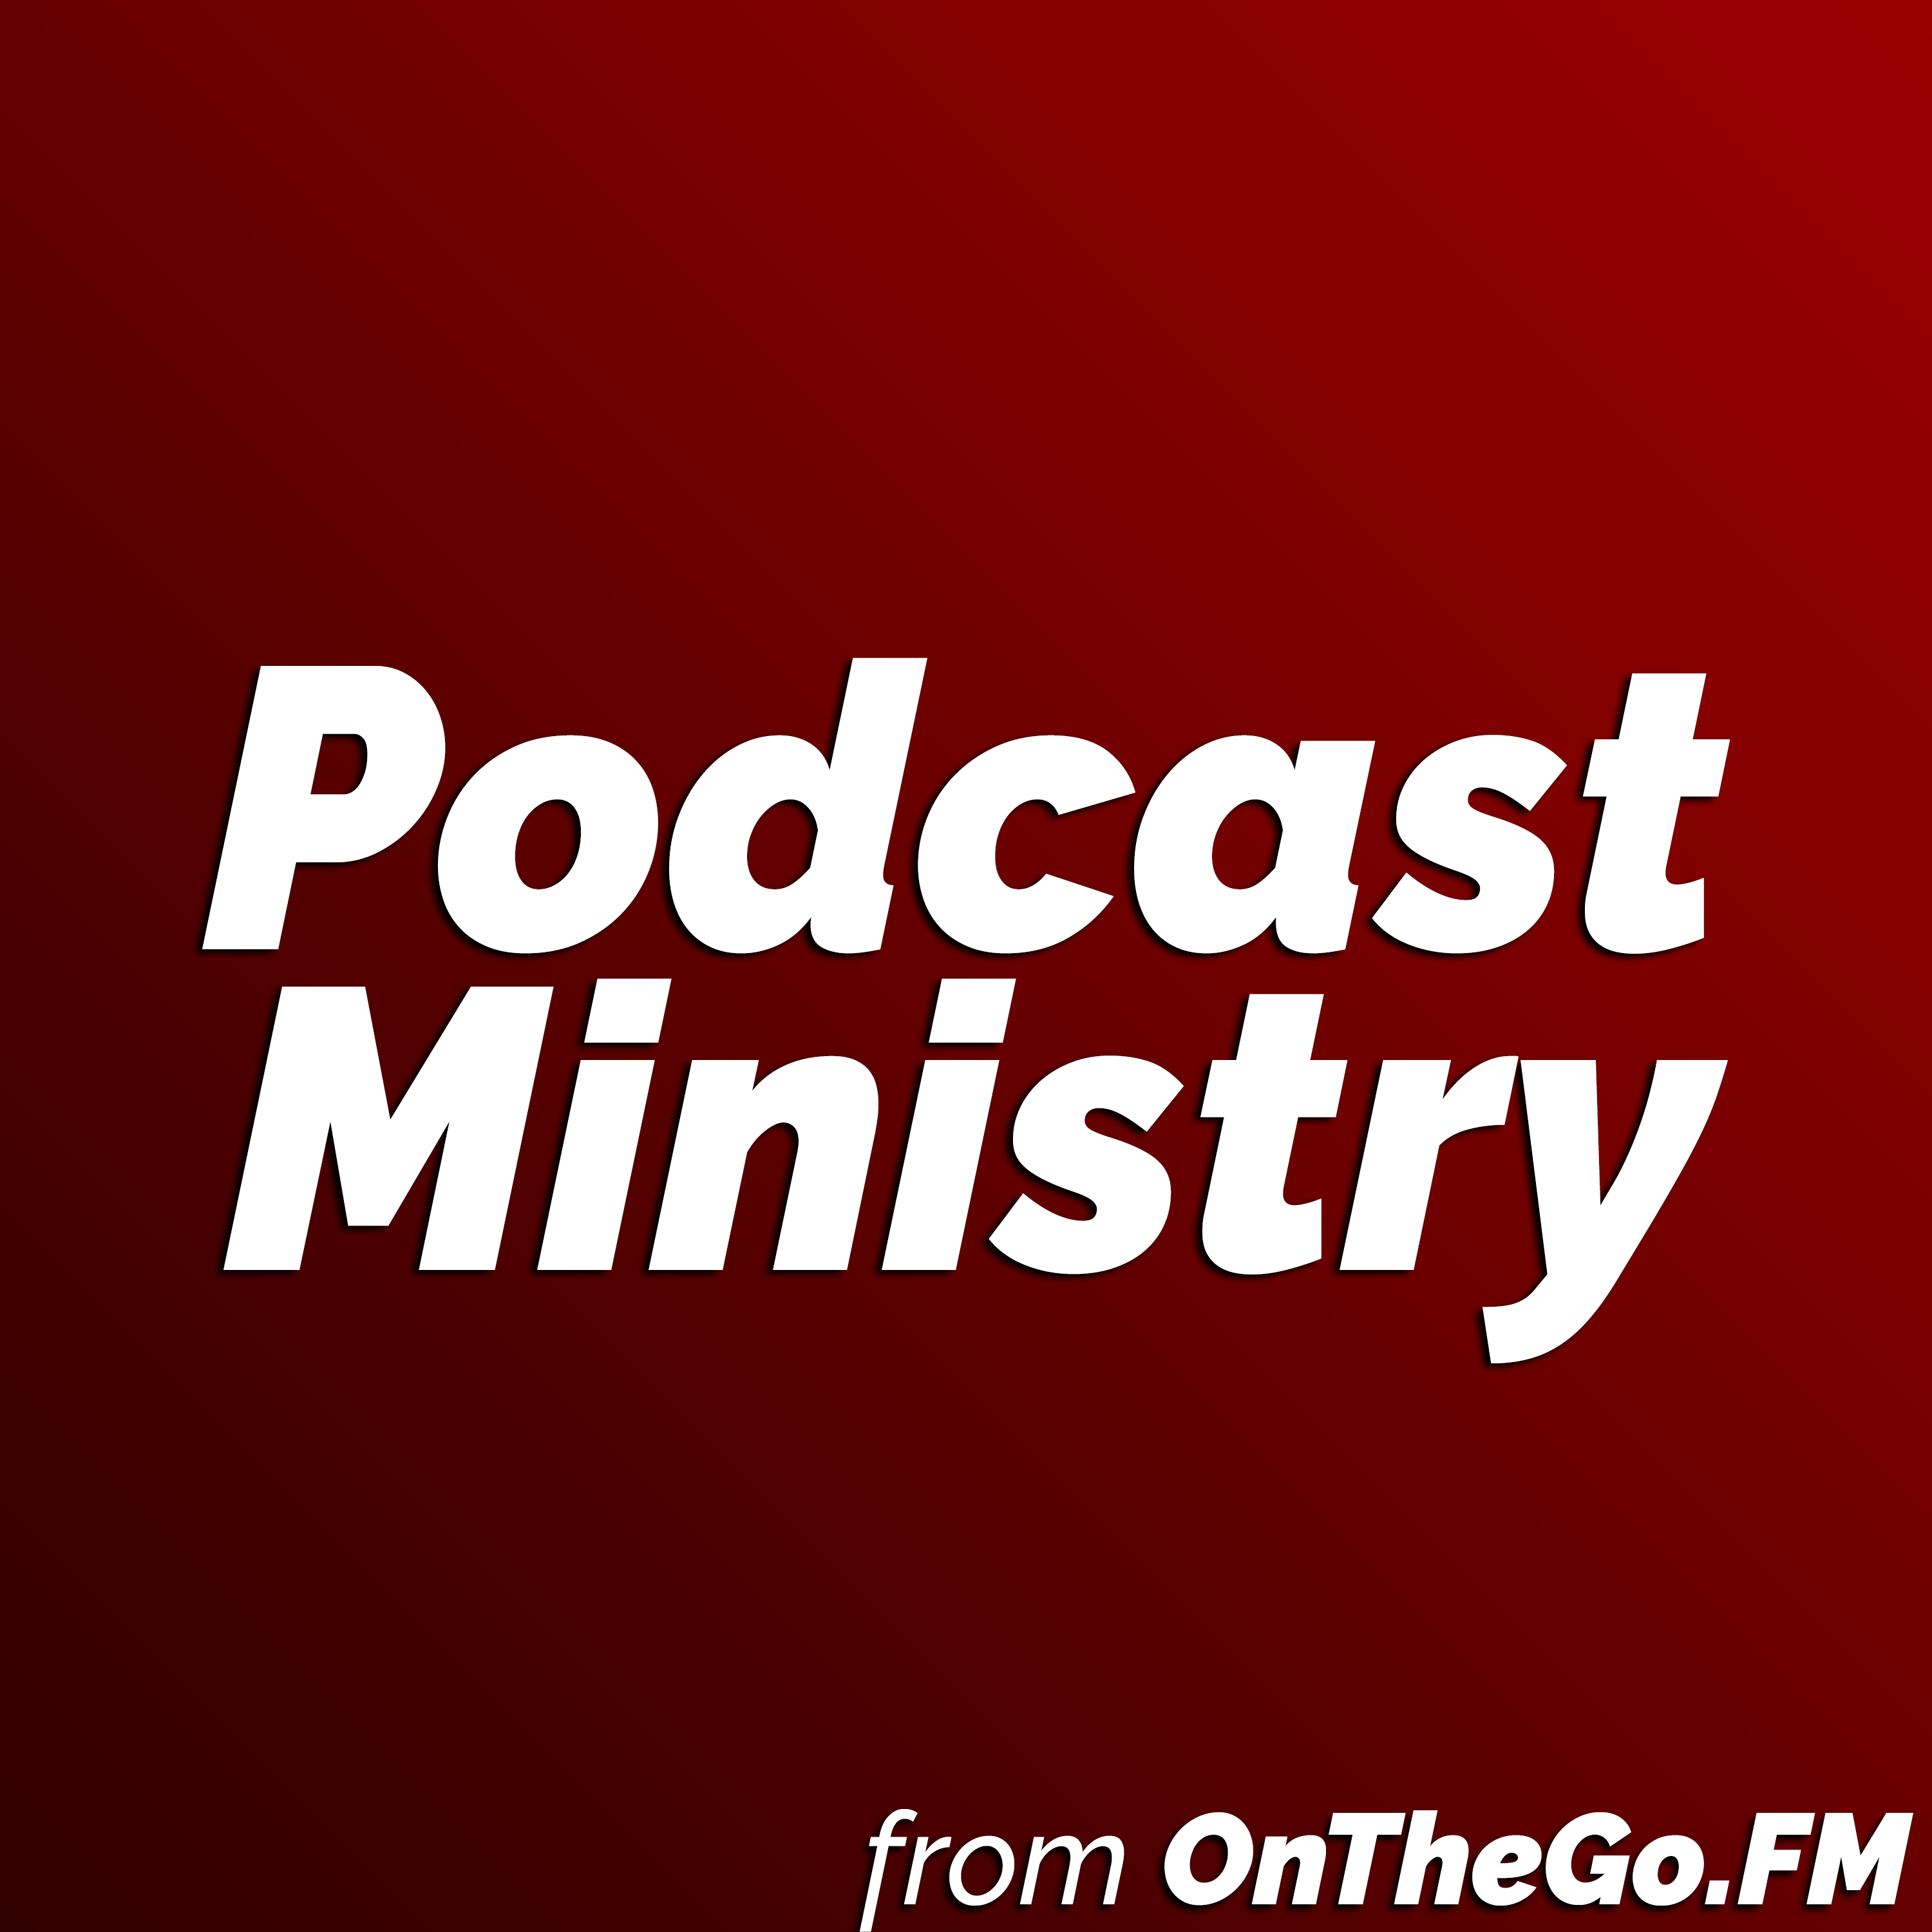 Podcast Ministry